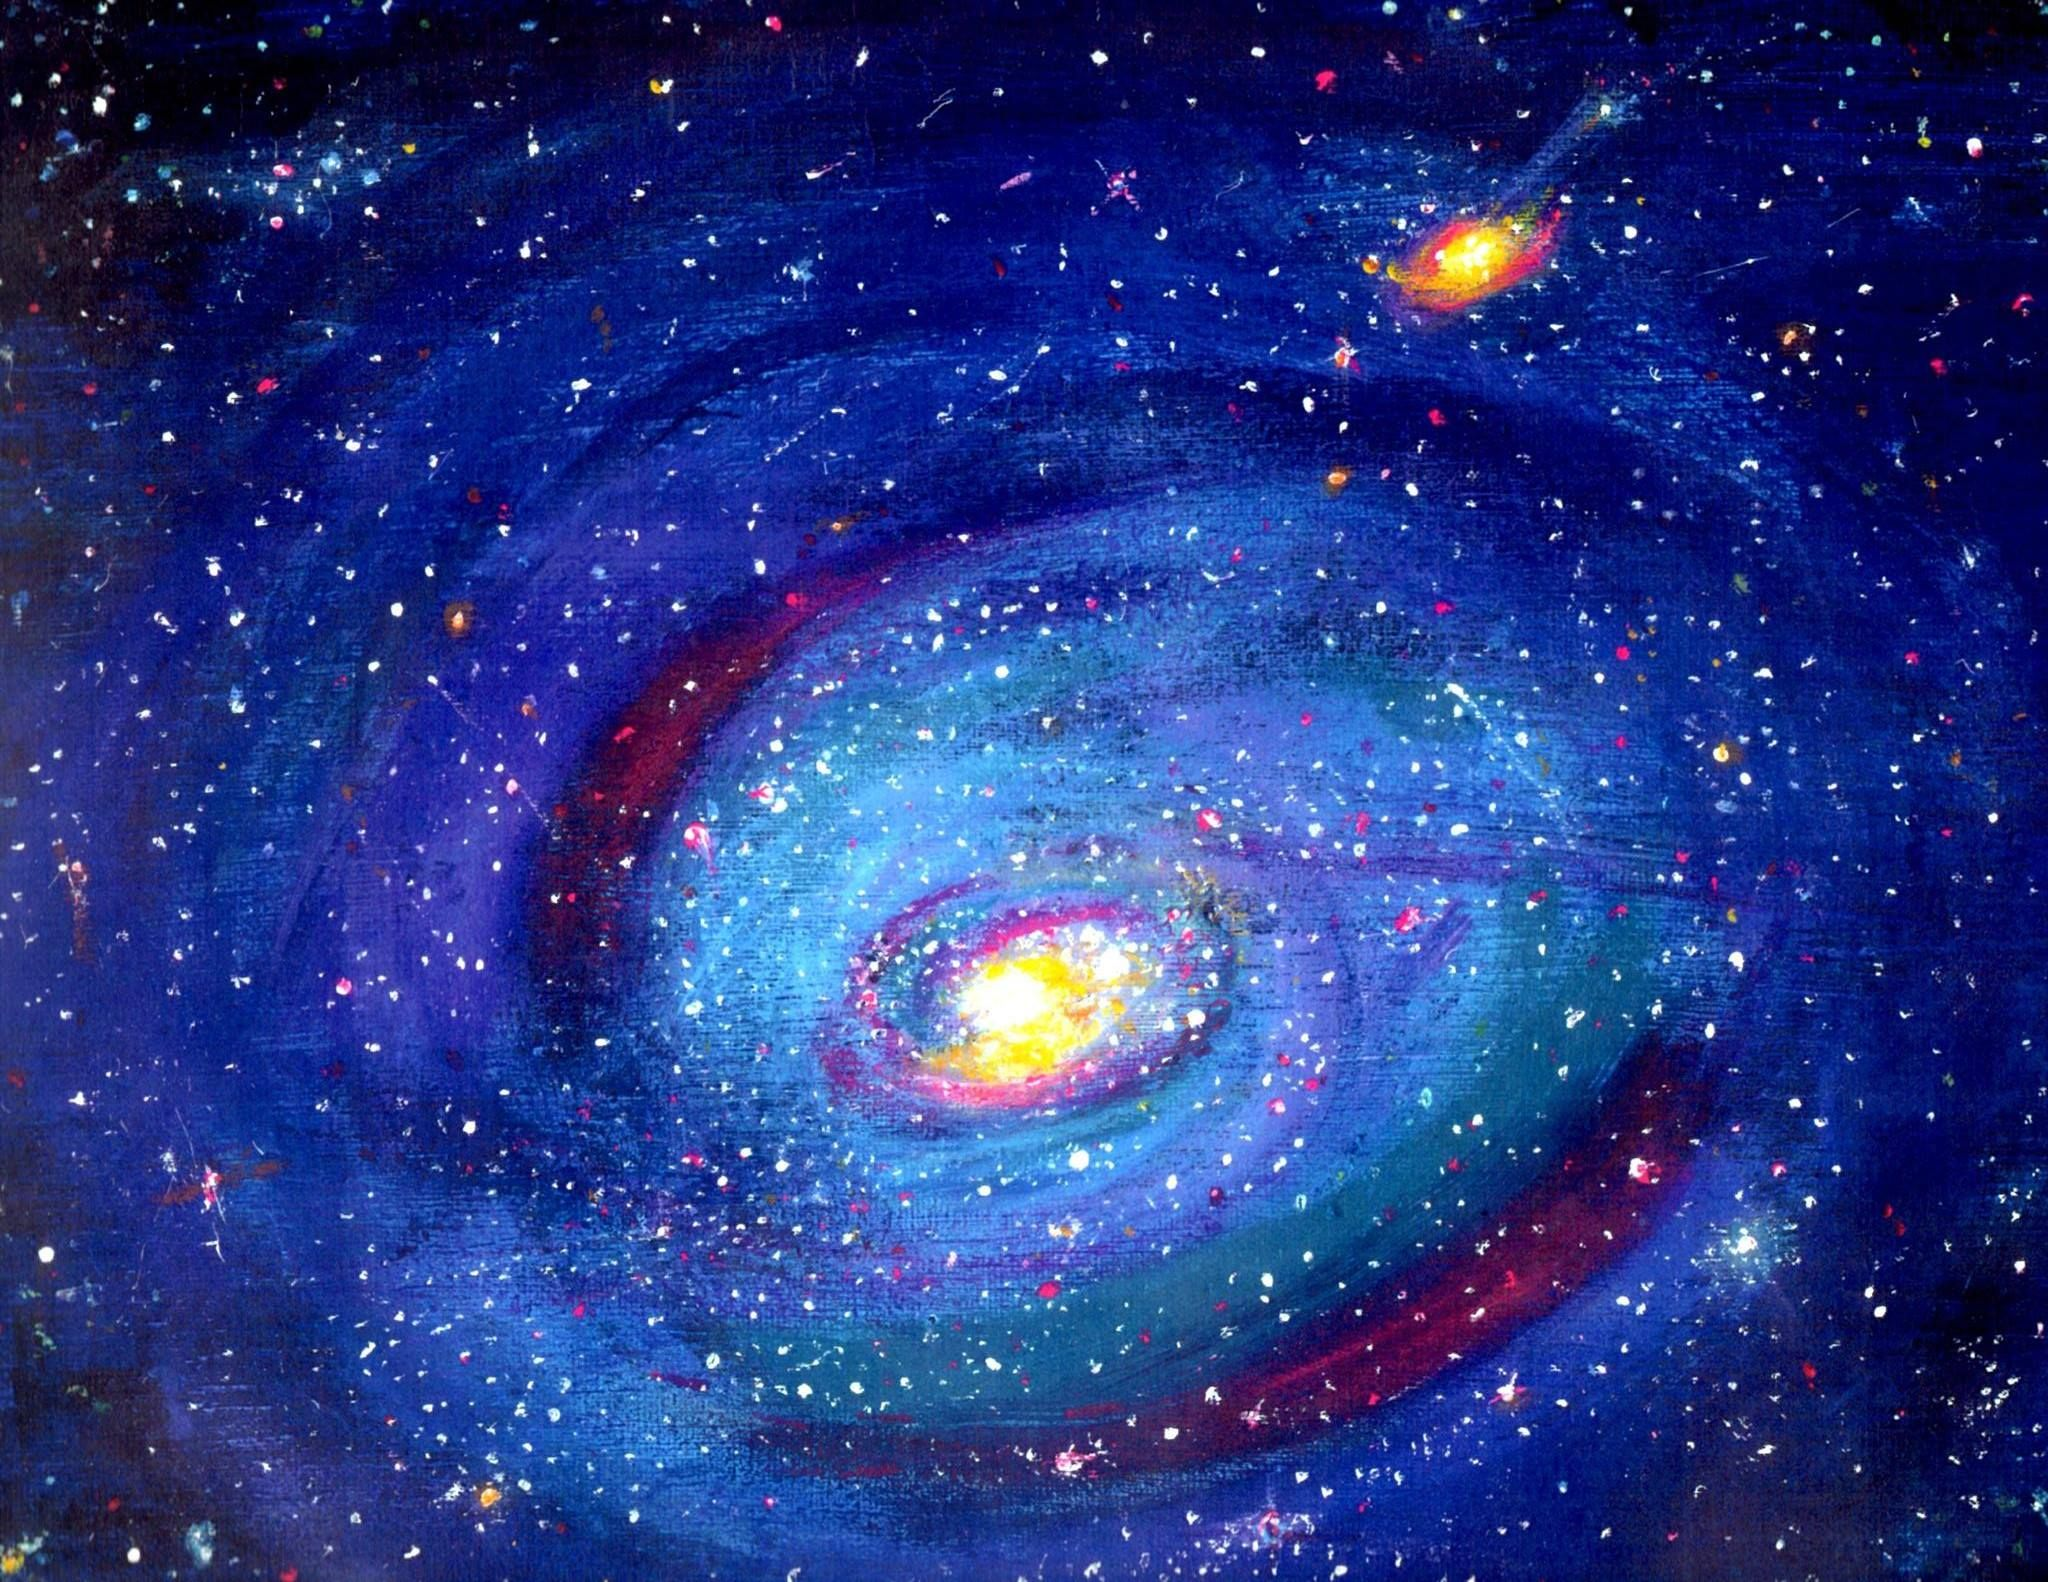 Star Gate ~ Art by Peggy D'Amato of Galaxy called Messiur ...